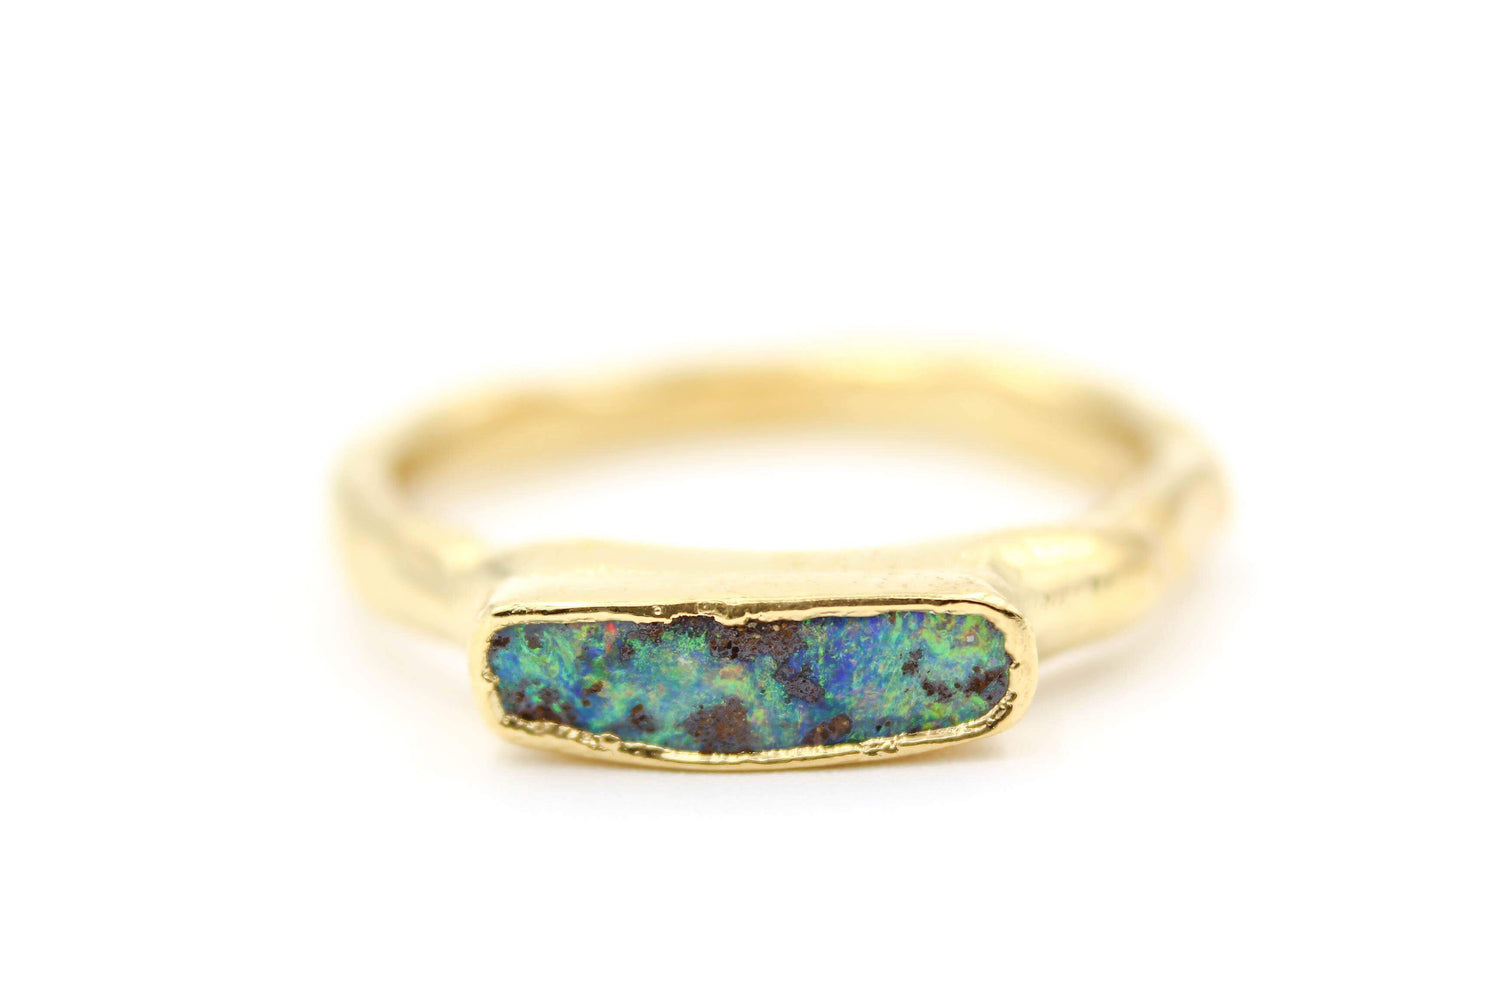 Australian Boulder Opal Wedding Band Unisex Custom Bridal Jewelry by Fox&Stone